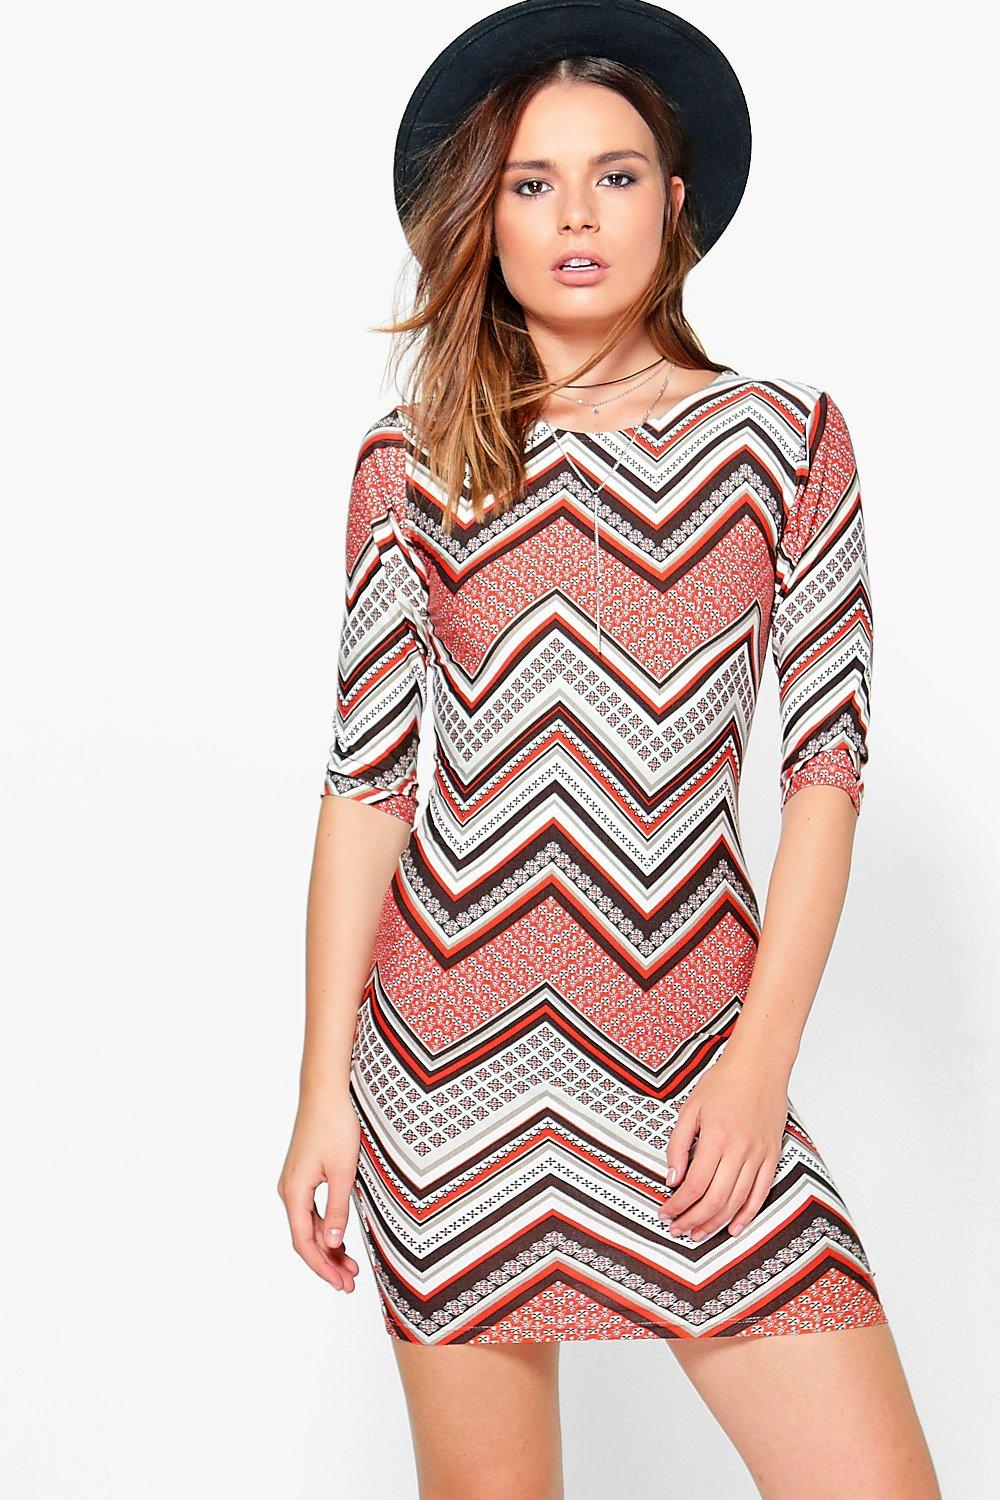 Adelaide Long Sleeve Bodycon Dress